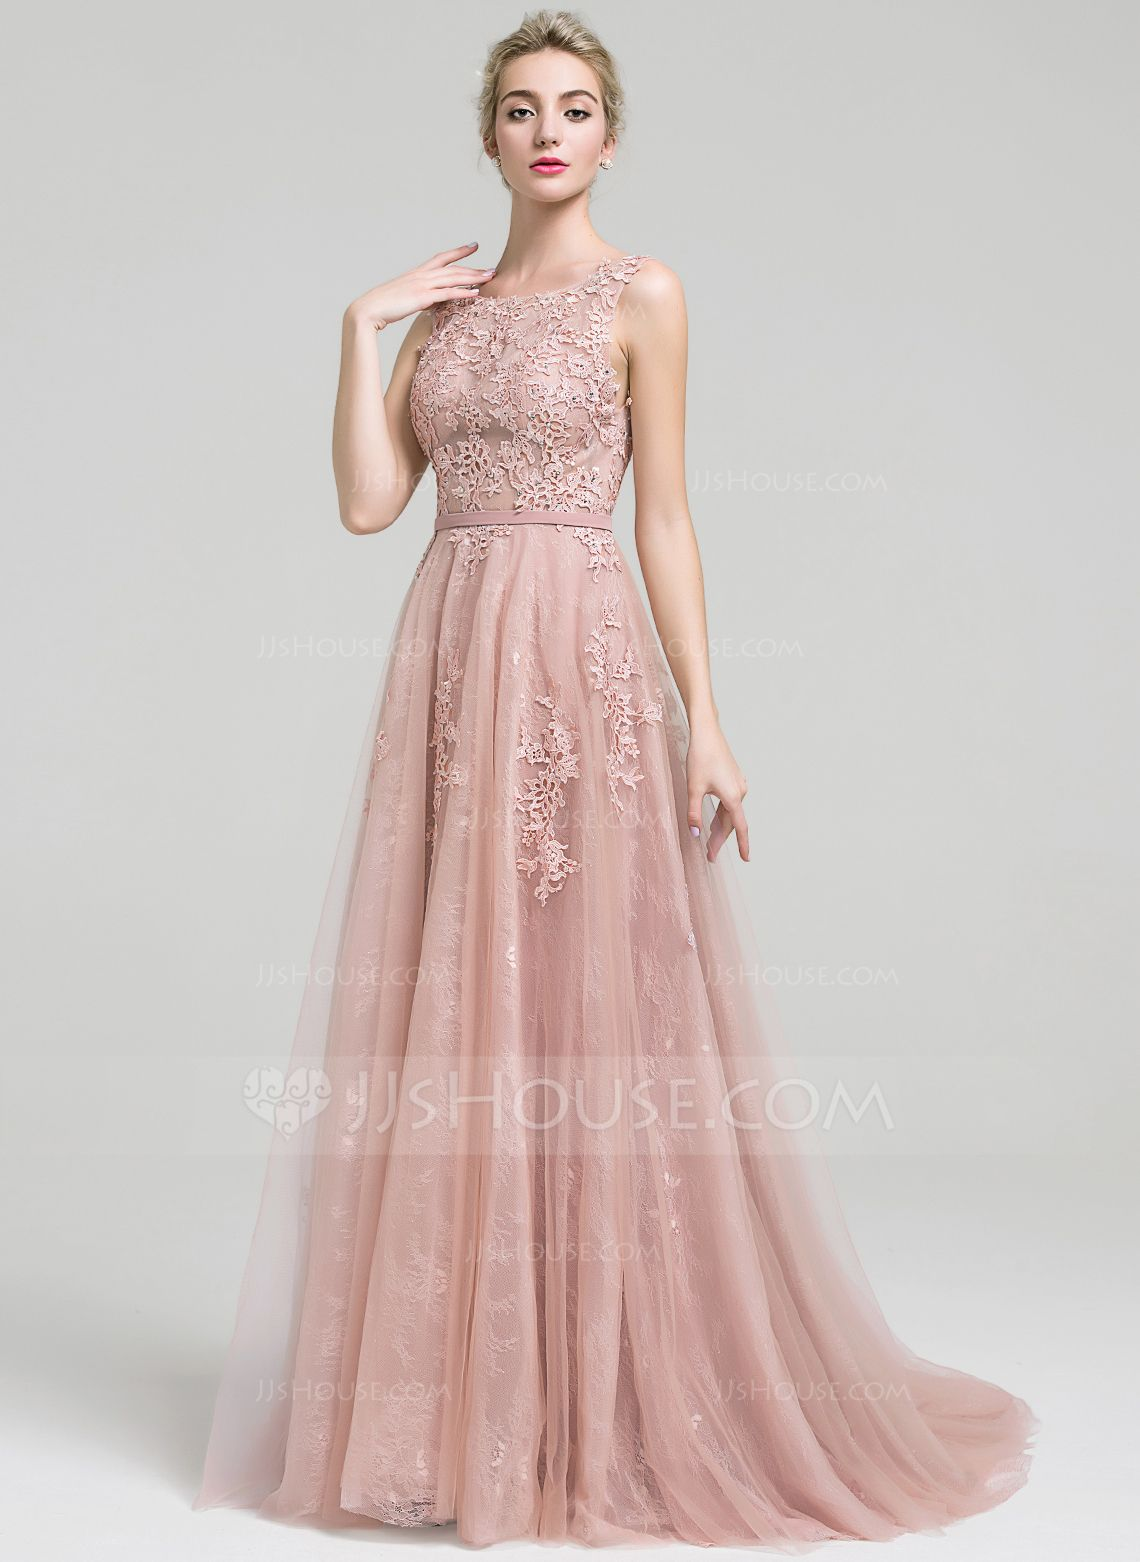 Princess Court Train Lace Evening dresses With Beading | Amazing ...